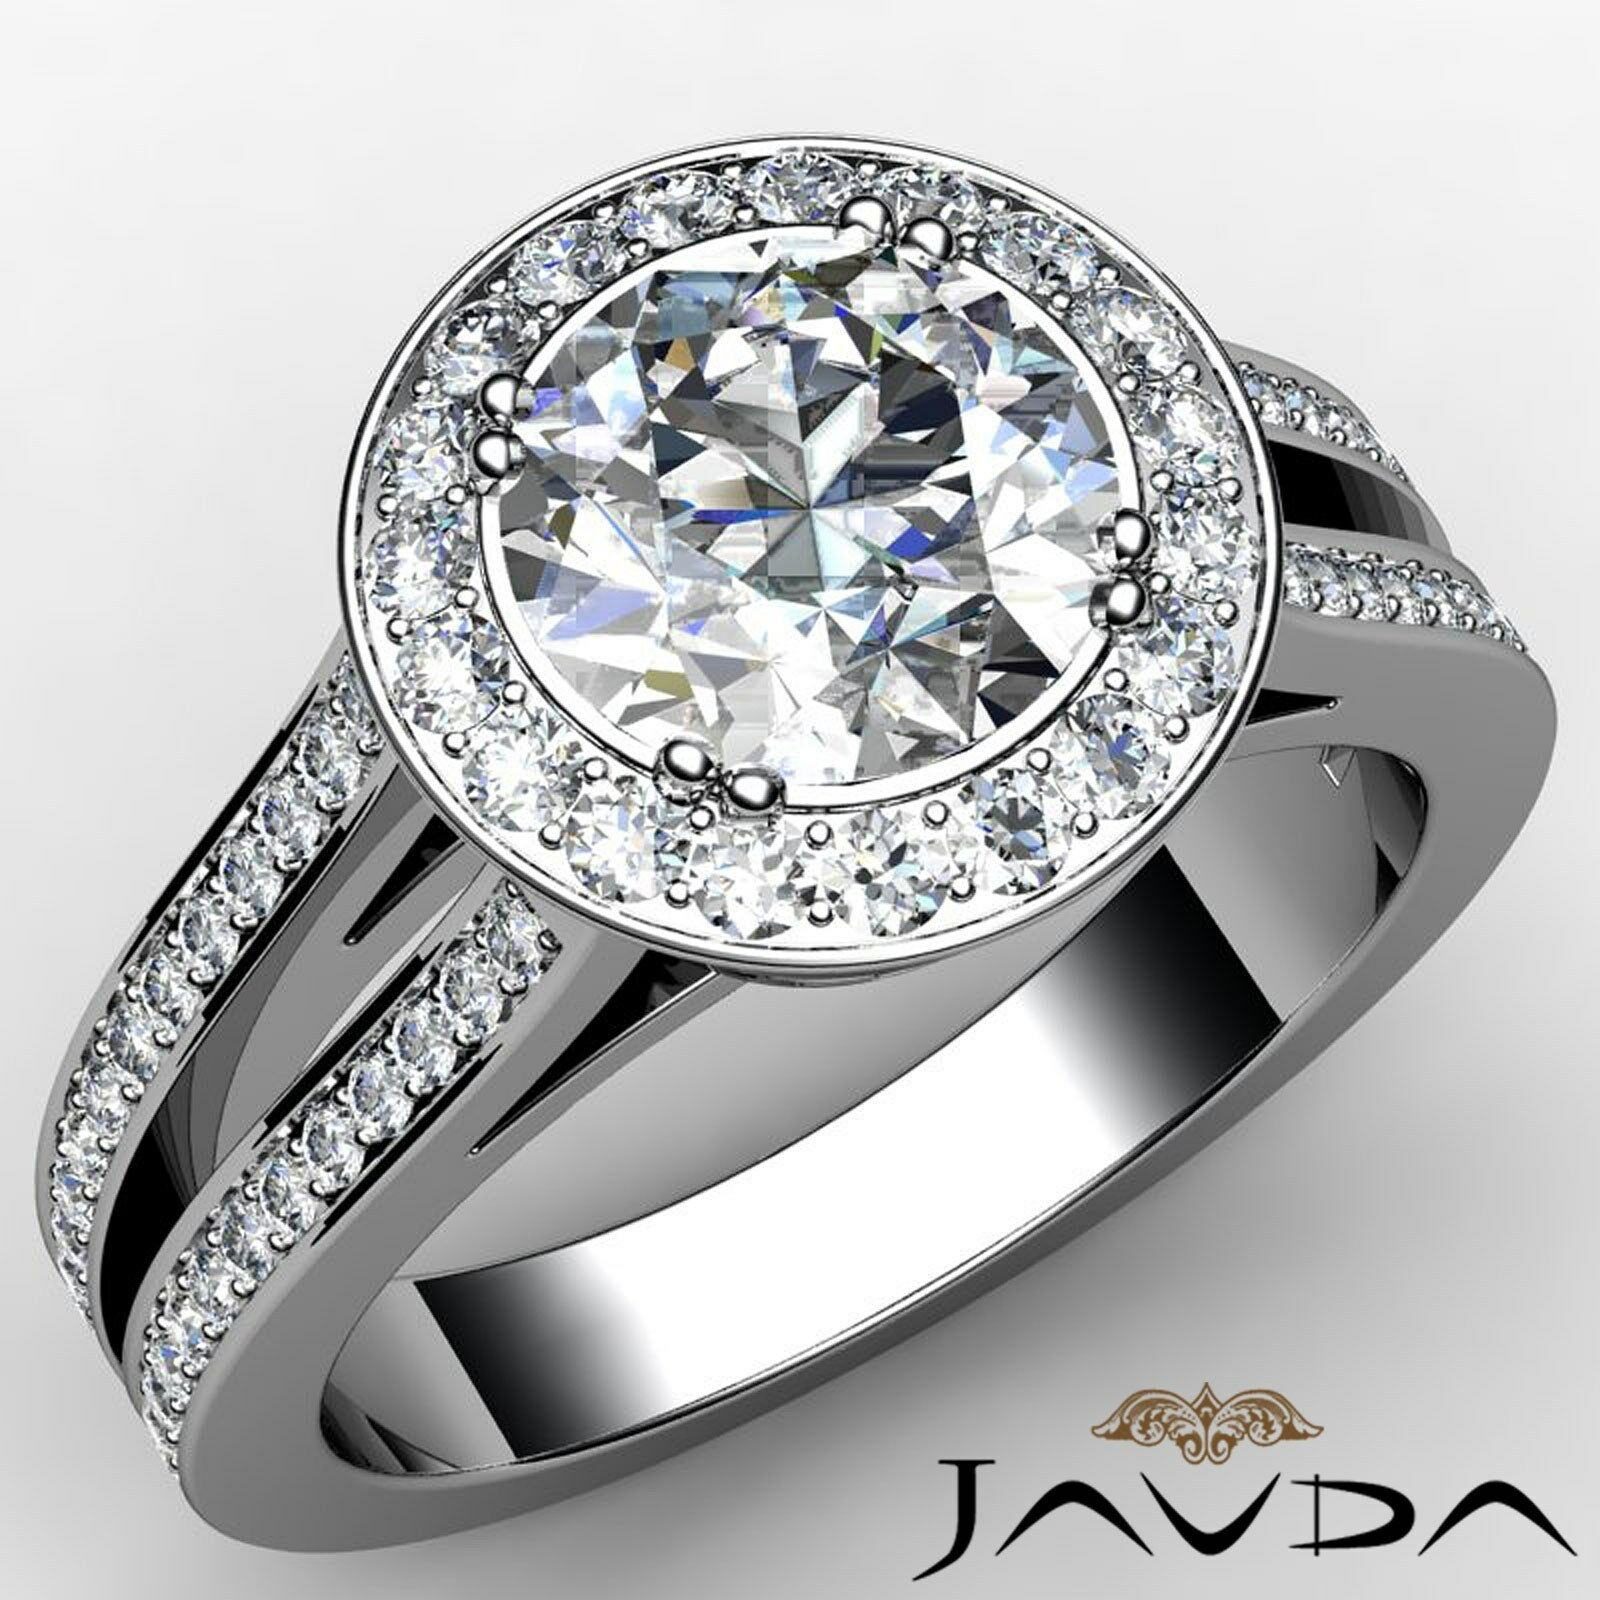 Halo Filigree Round Diamond Engagement Double Prong Ring GIA G Color VS1 2.35 Ct